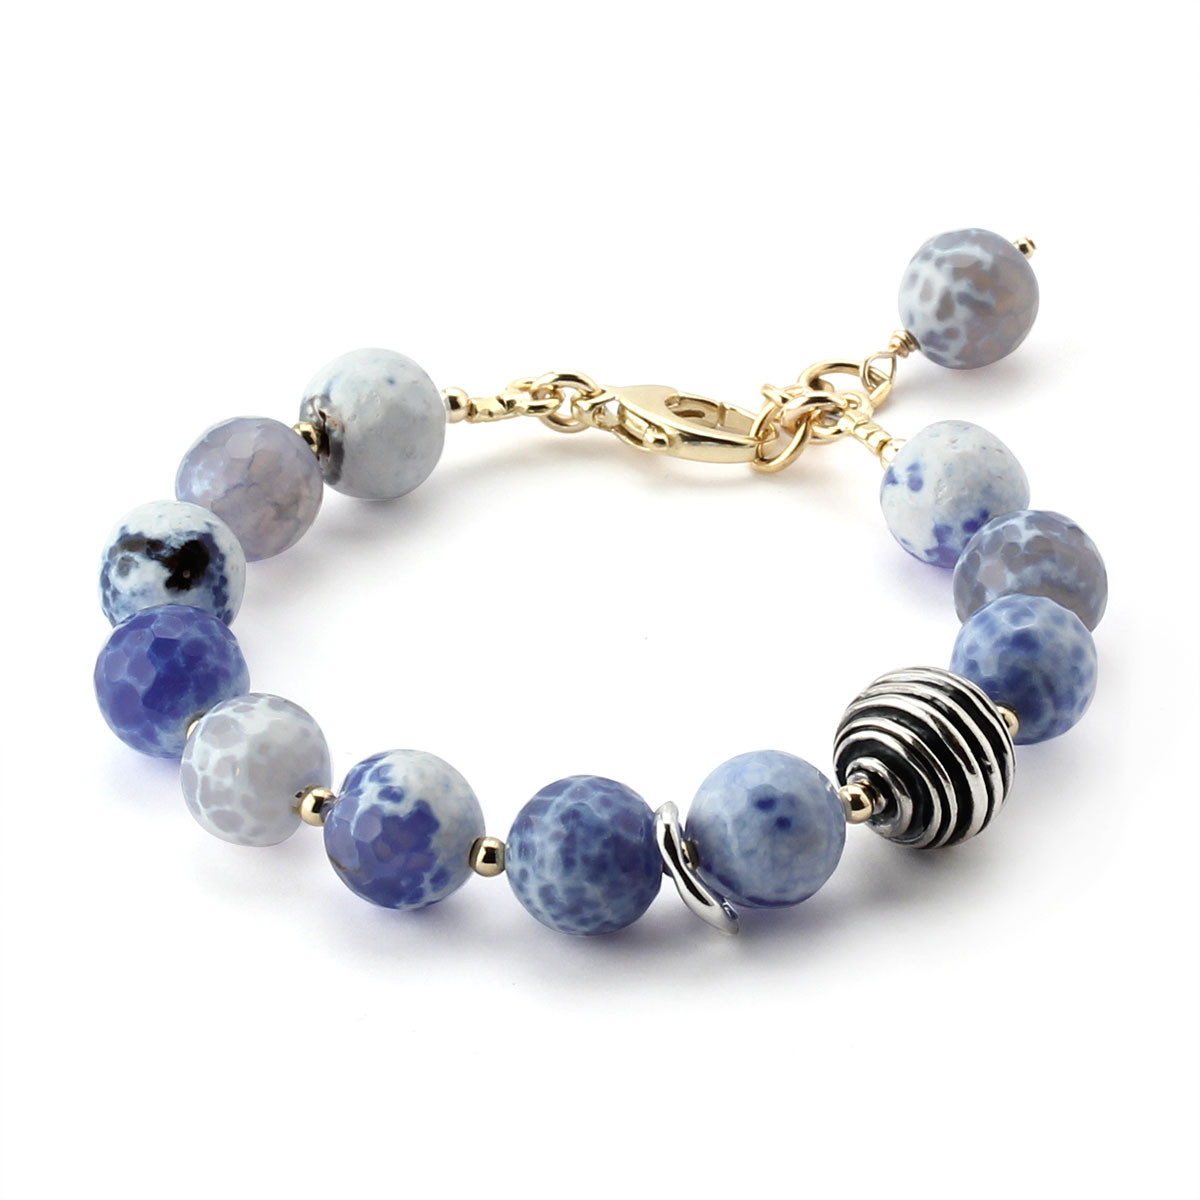 348638-Lollies Blue and White Glass Bracelet